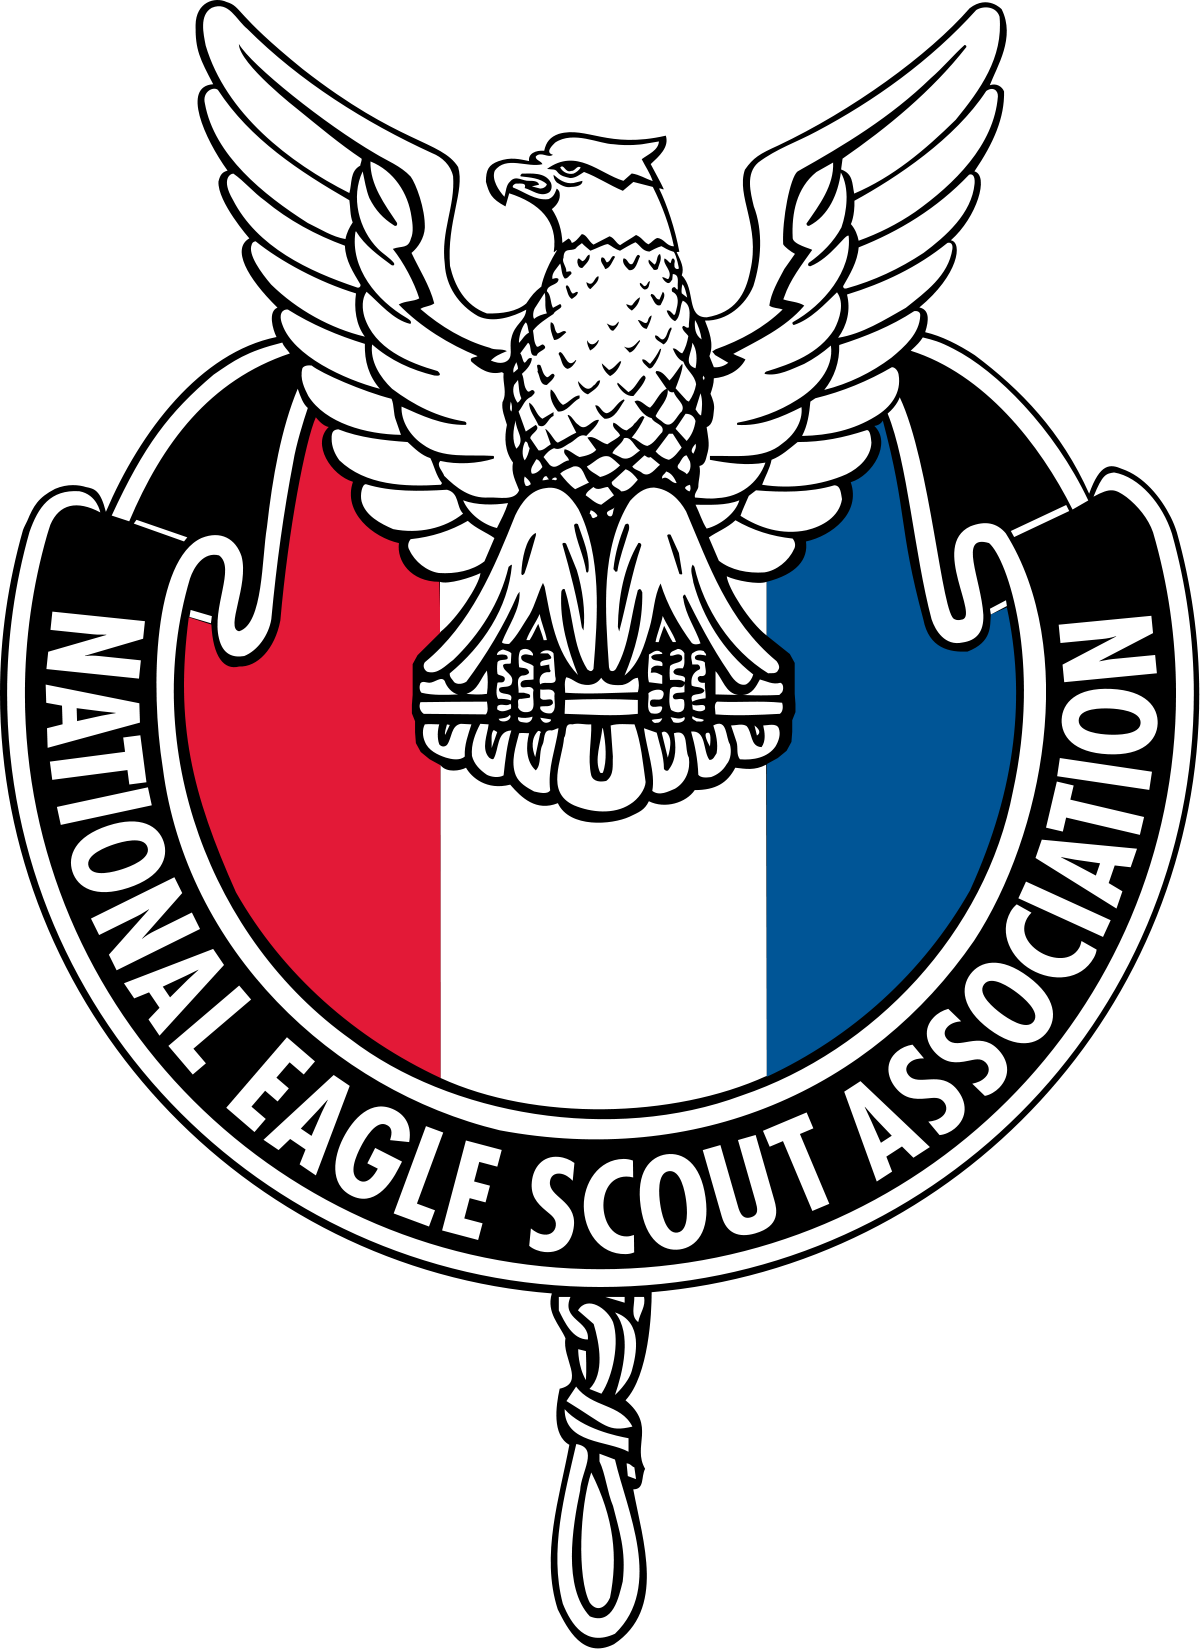 eagle scout logo png